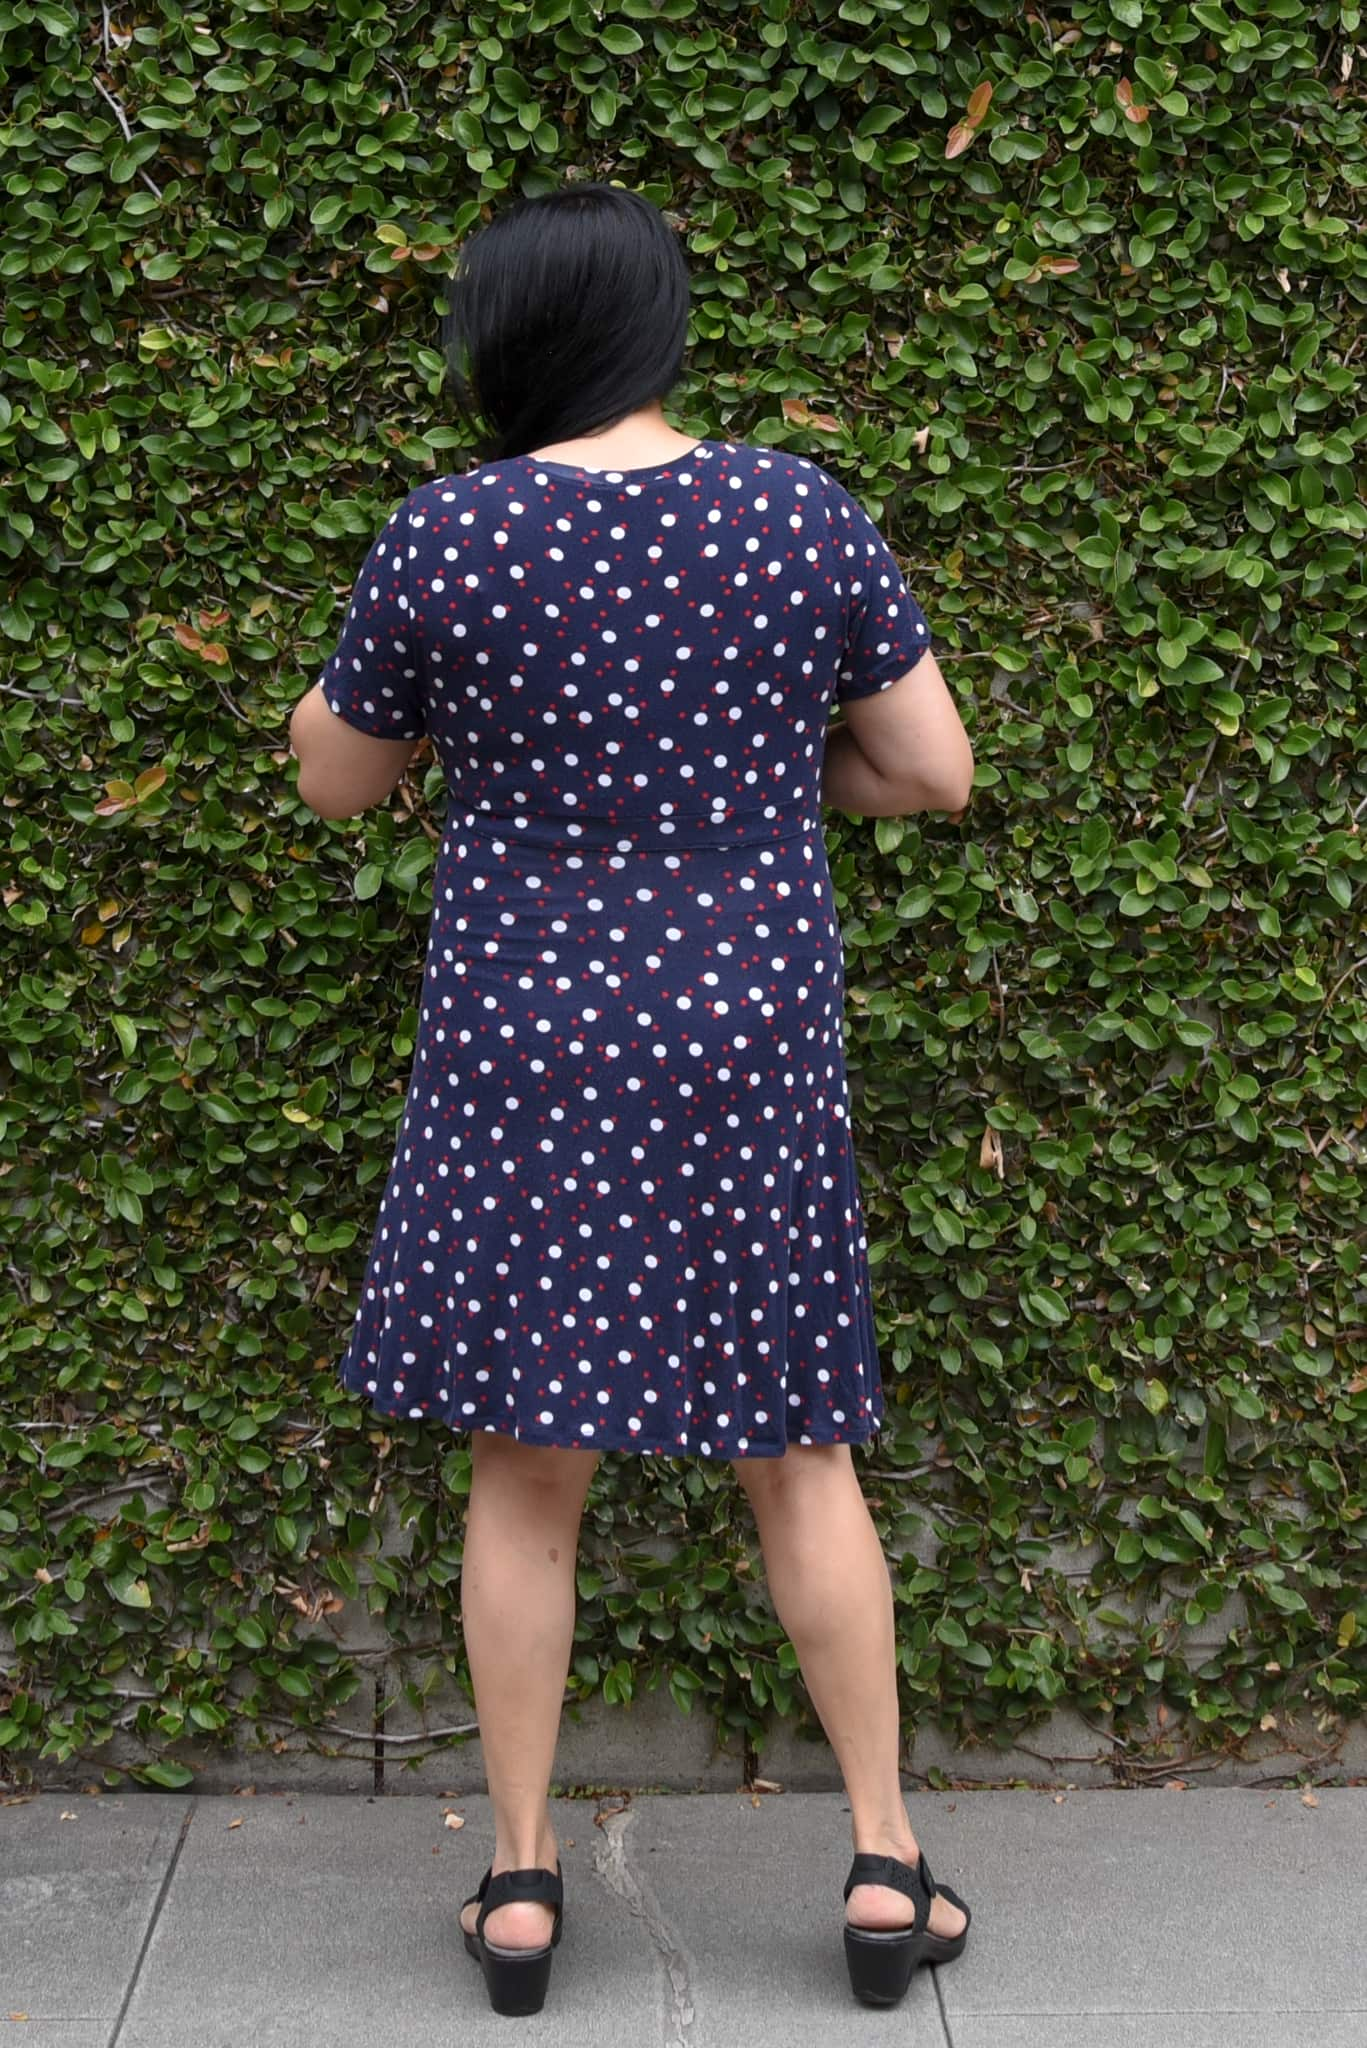 Image of woman with long black hair with her back to the camera standing in front of a wall covered in vines wearing an empire dress in a dark blue knit with larger white polka dots and smaller red polka dots